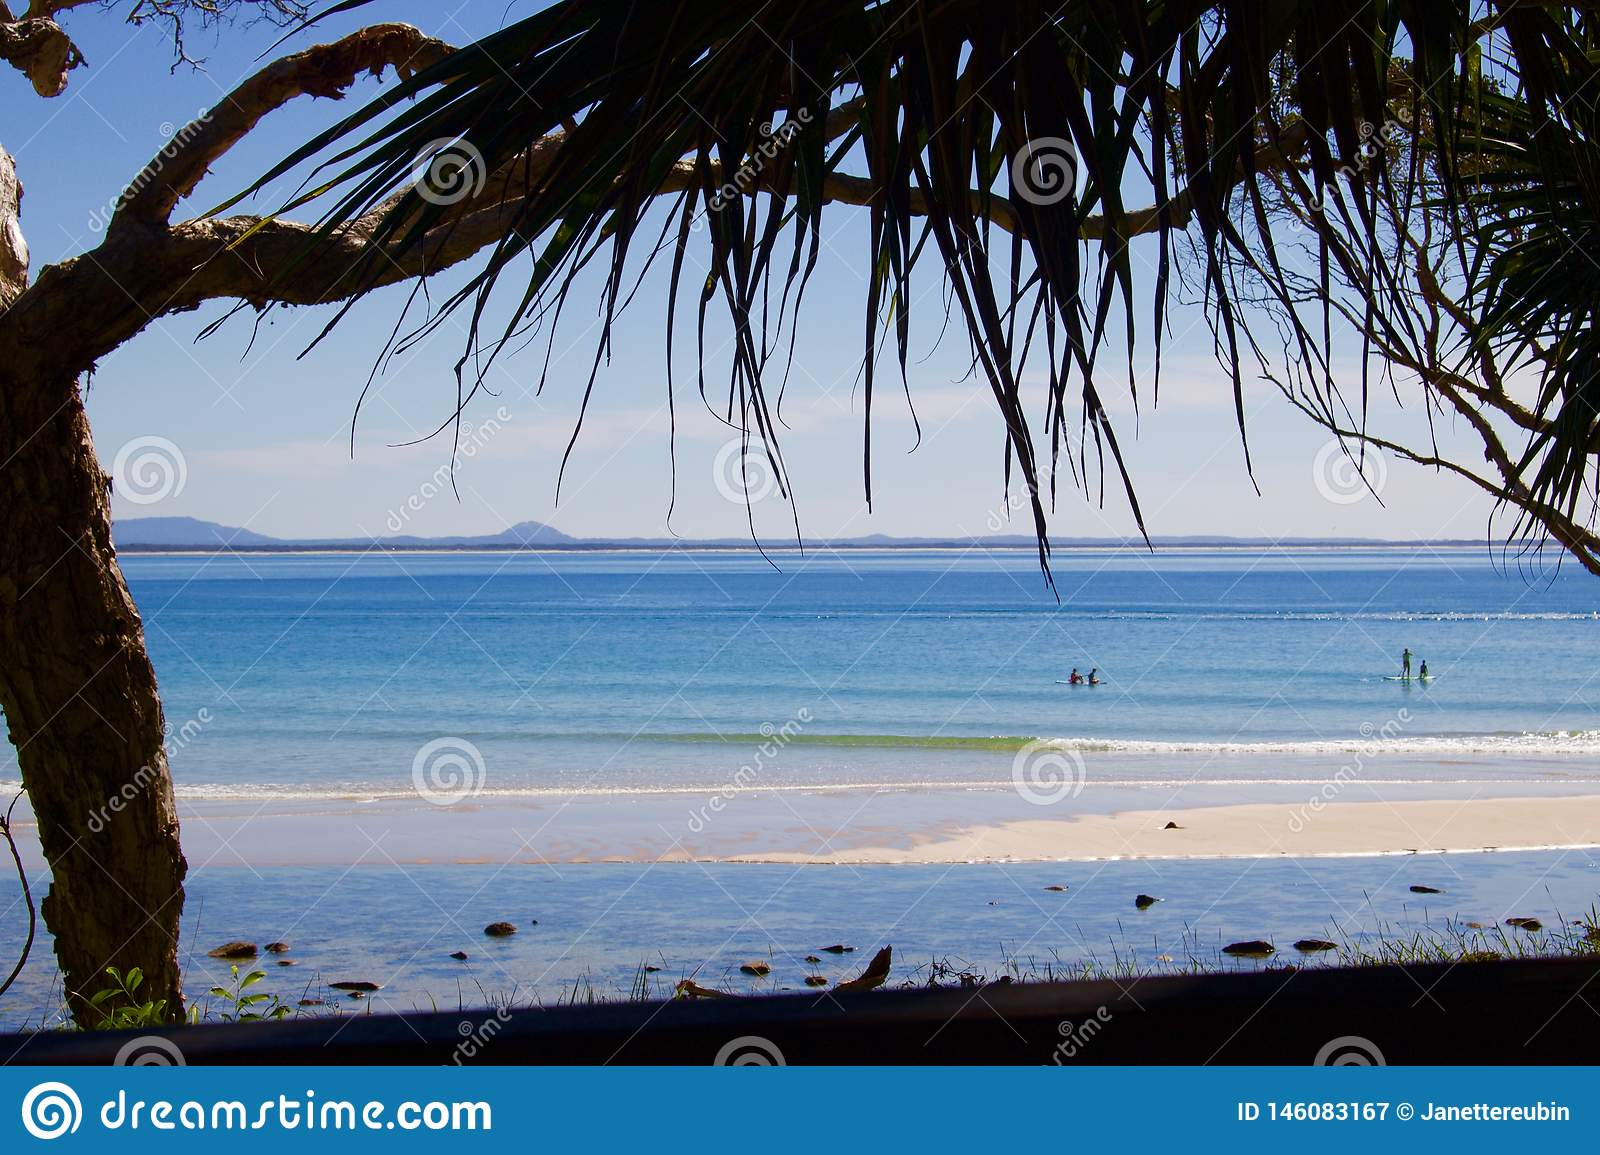 View of beach at Noosa with overhanging palm fronds